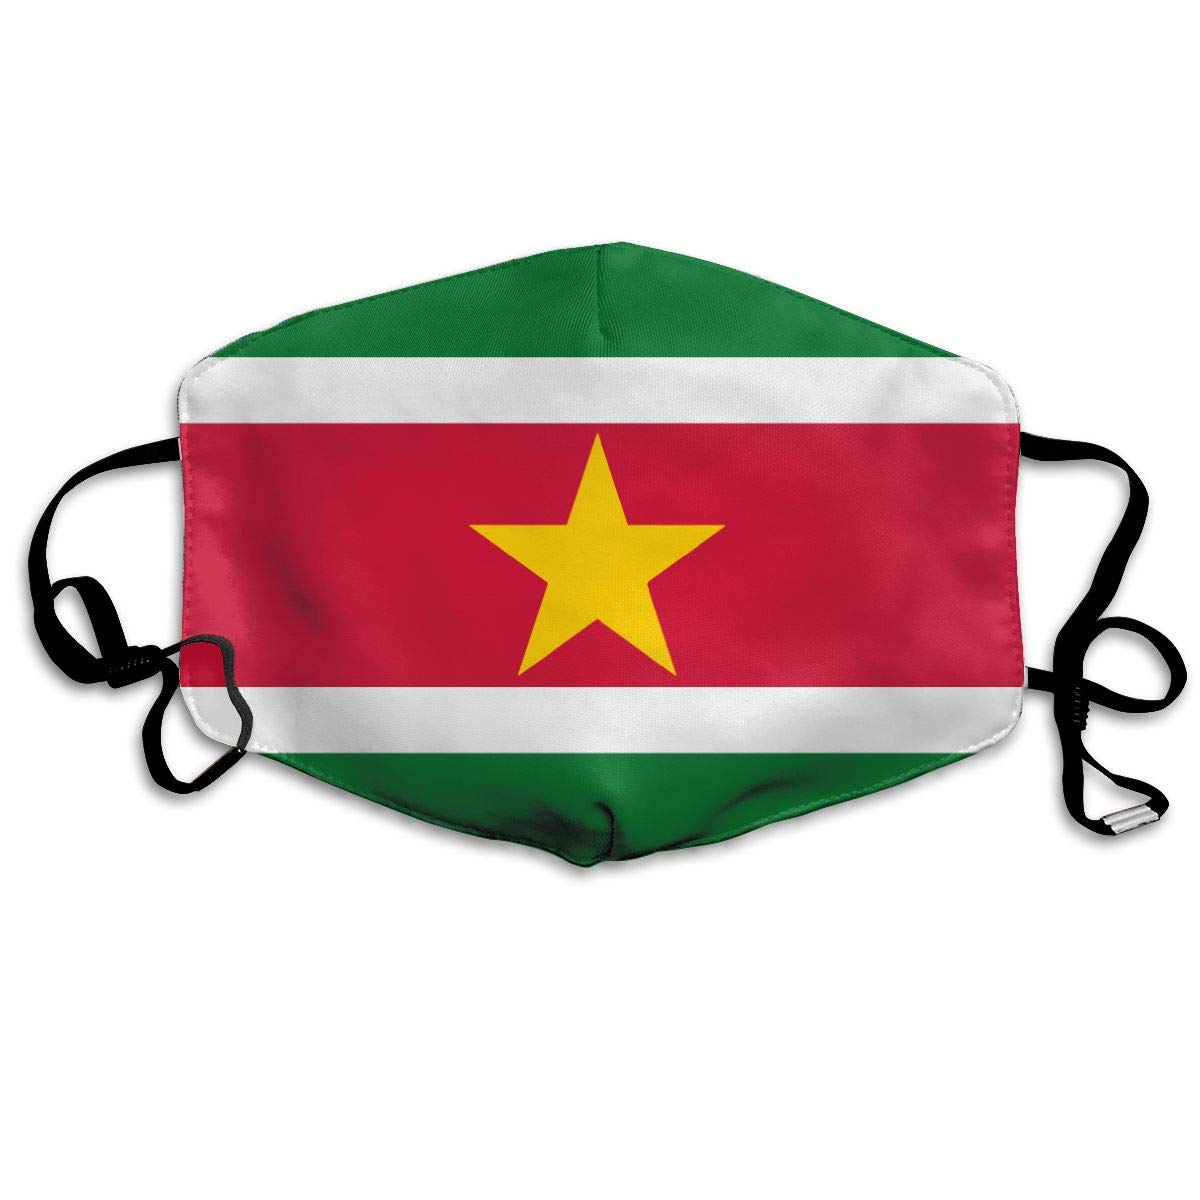 Suriname Flags Of Countries Washable Reusable   Mask, Cotton Anti Dust Half Face Mouth Mask For Kids Teens Men Women With